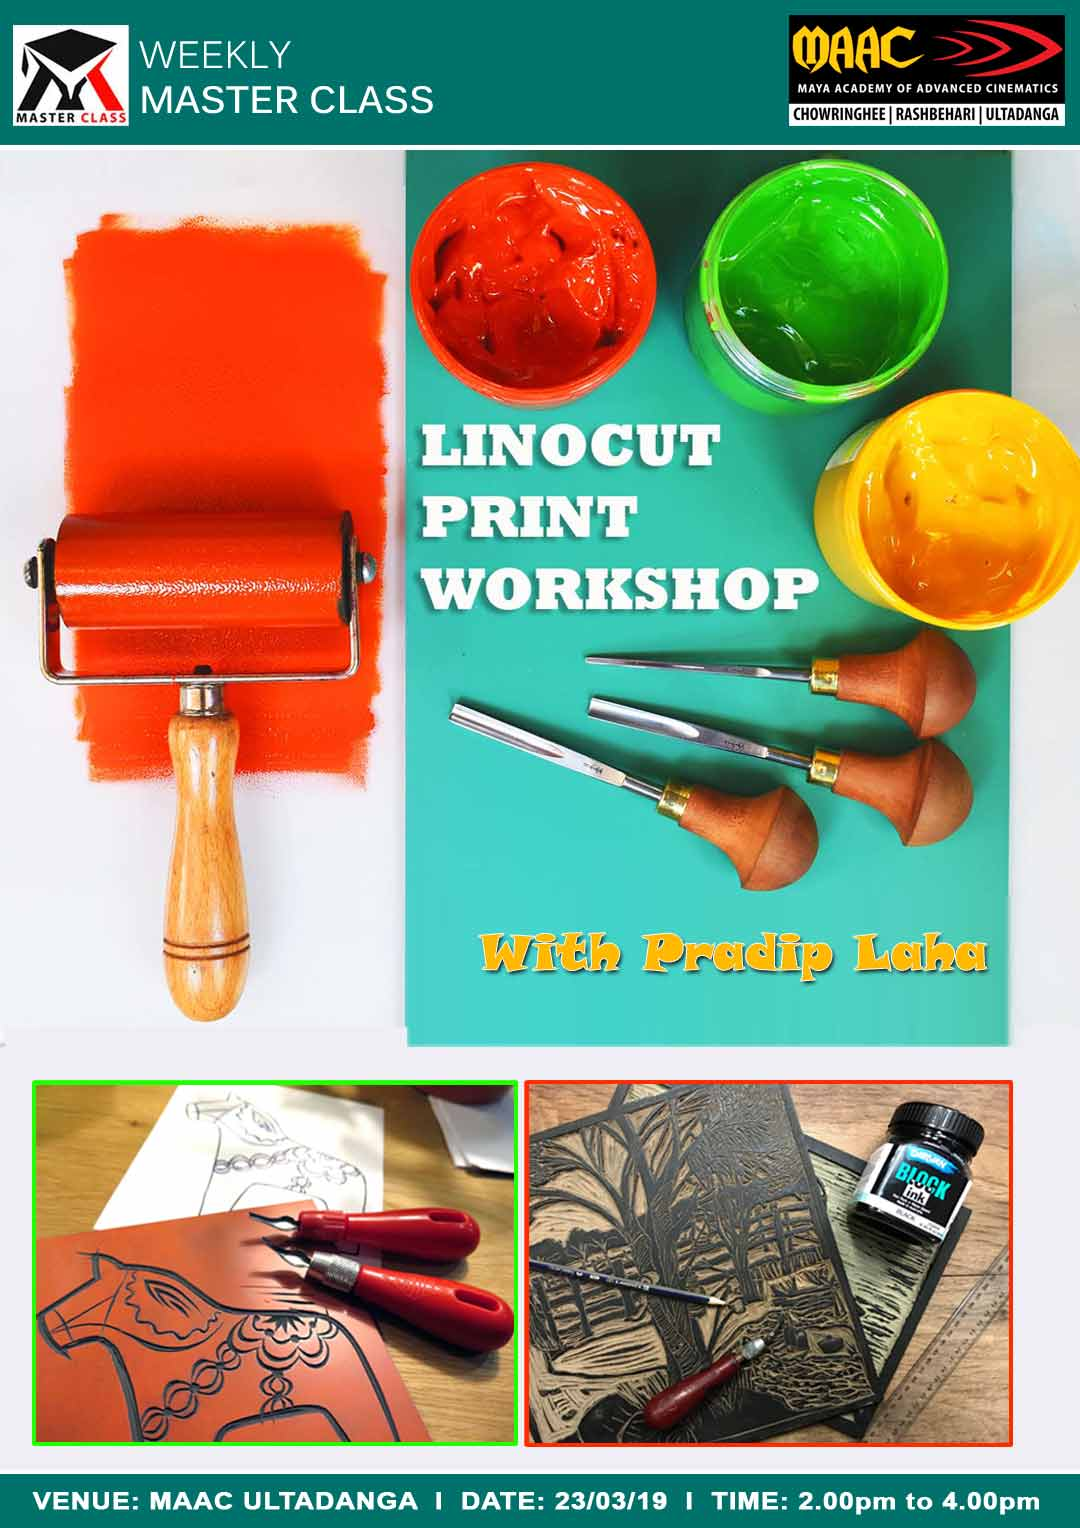 Weekly Master Class on Linocut Print Workshop